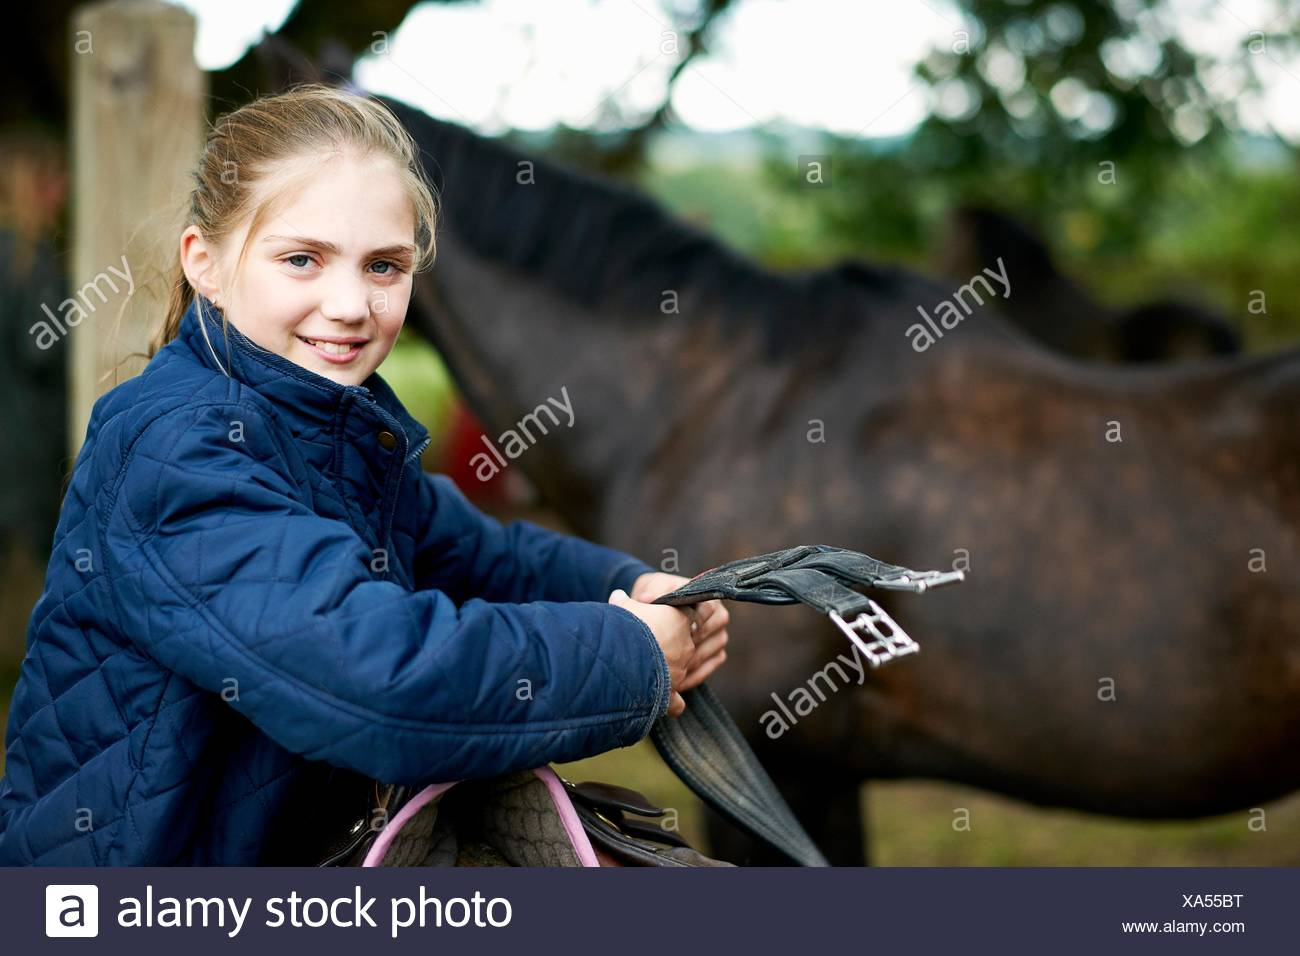 Girl horseback rider preparing saddle - Stock Image